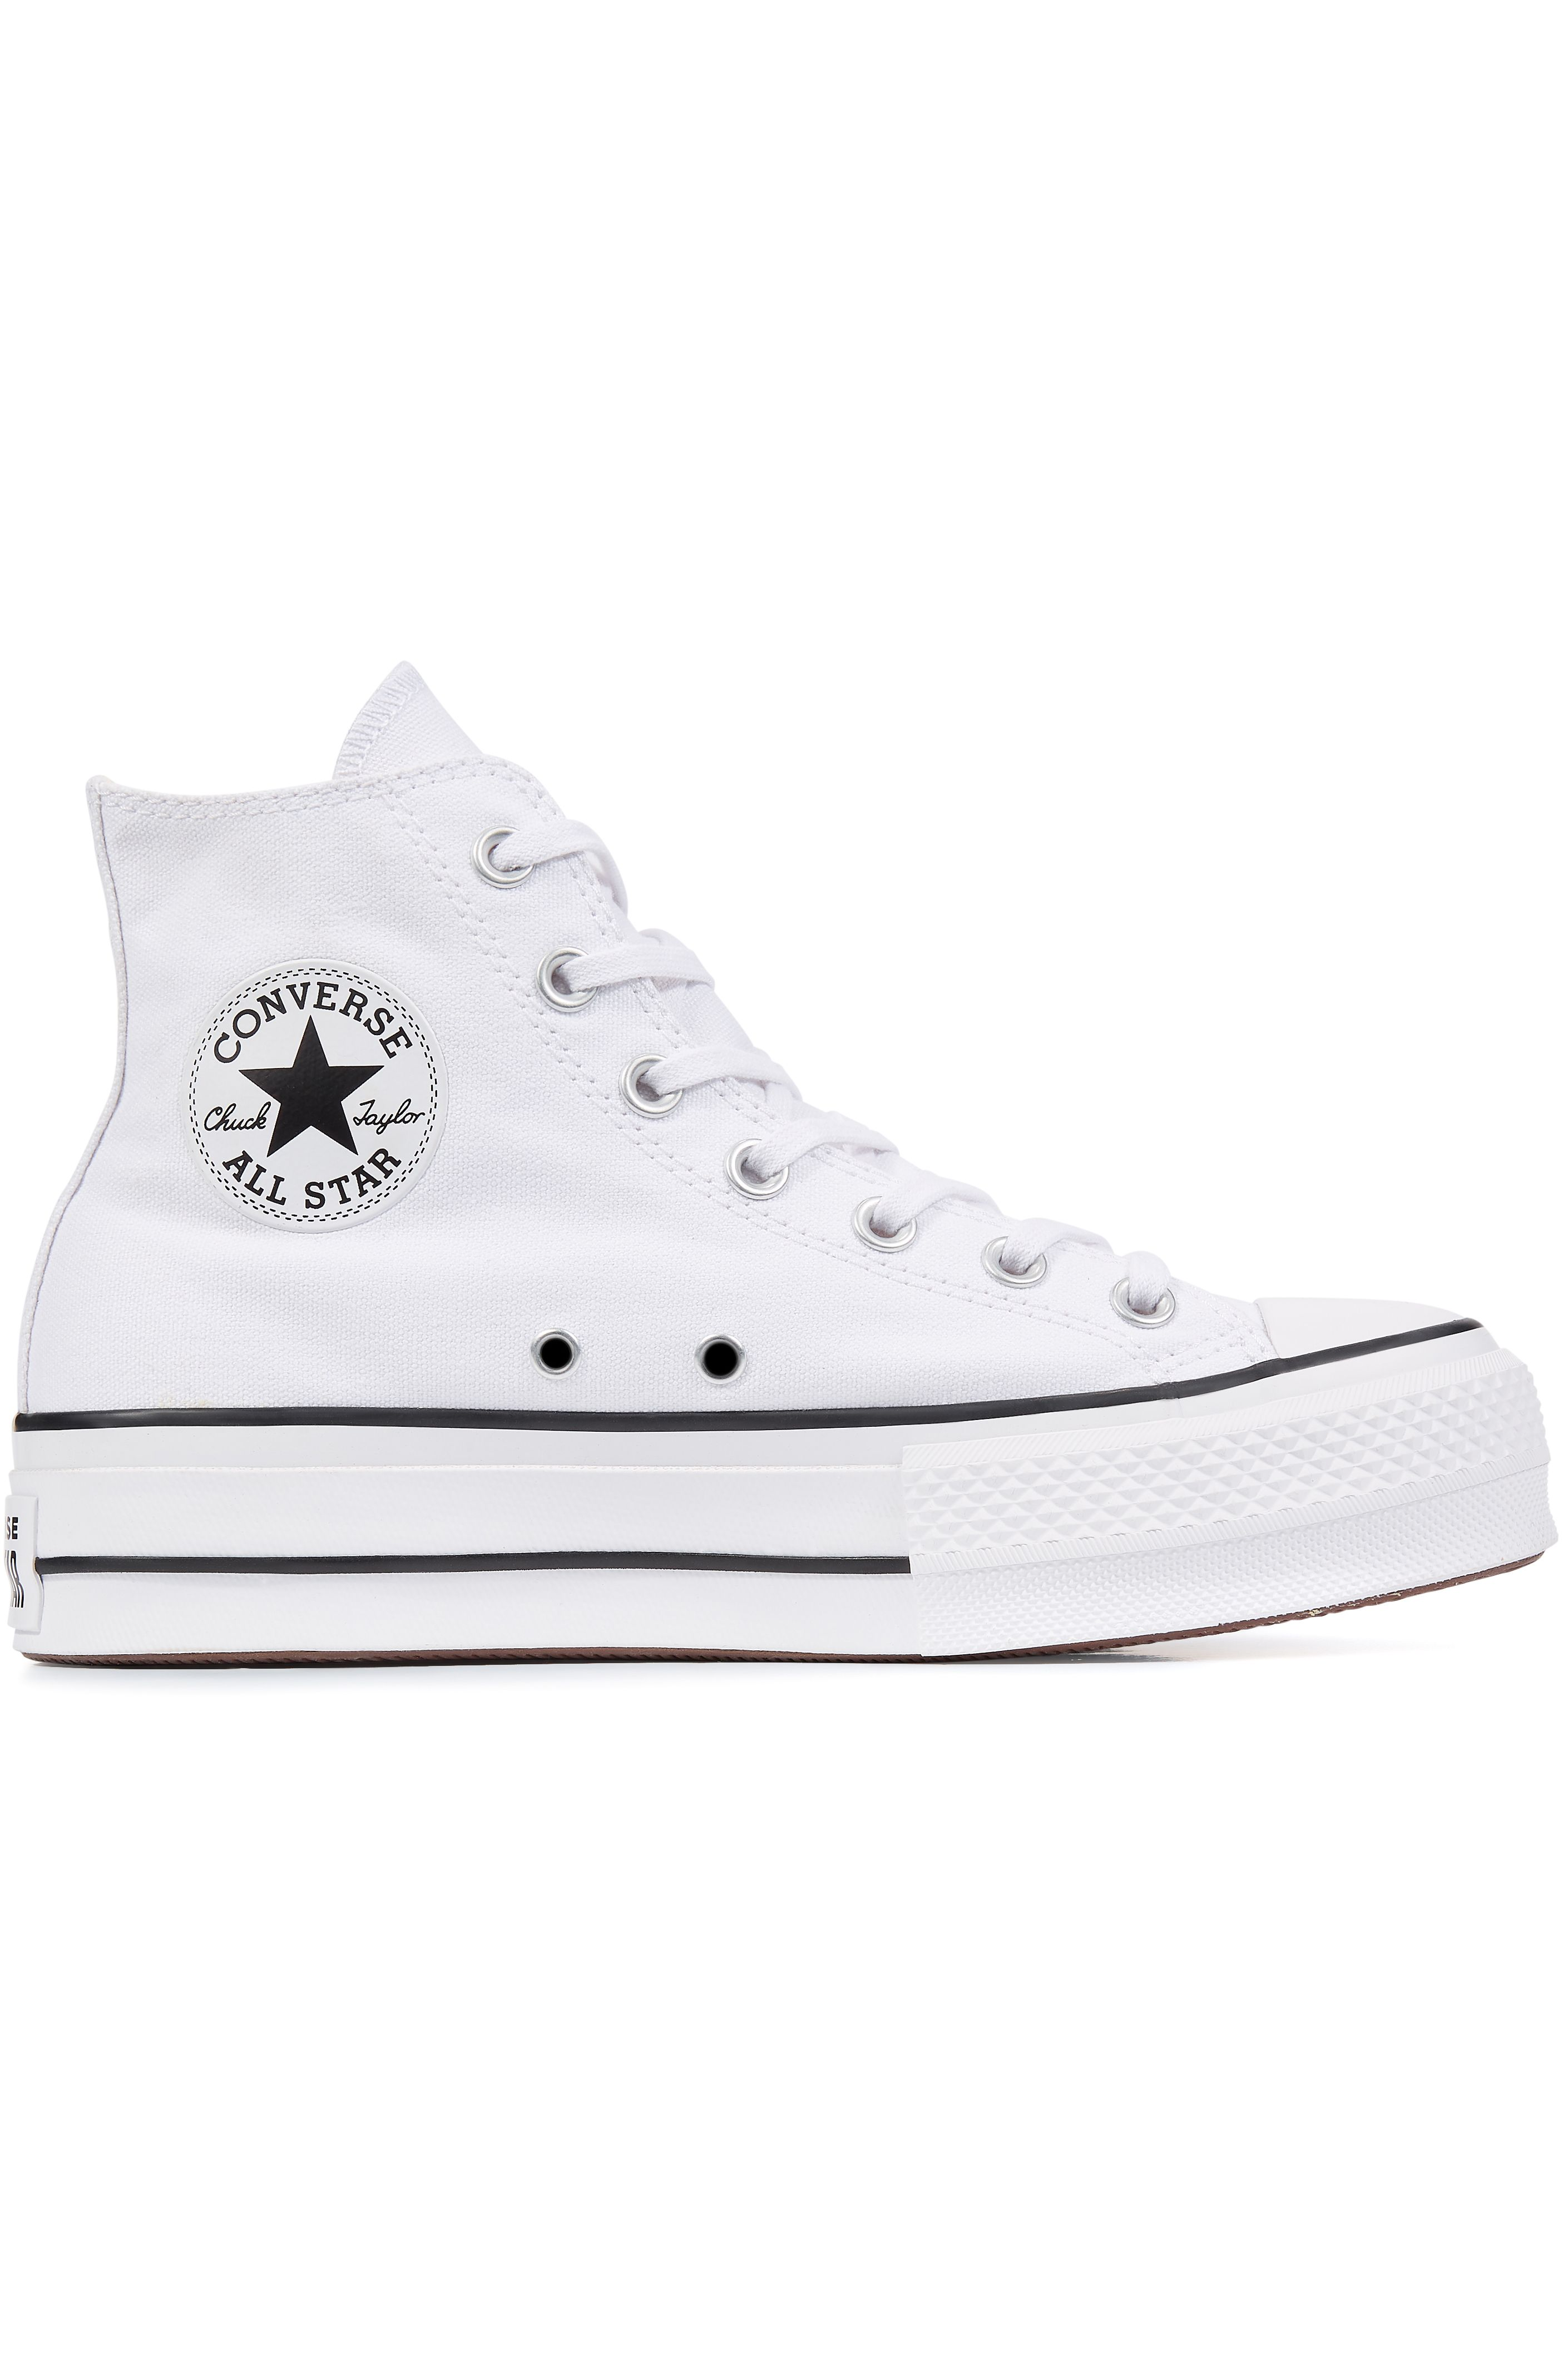 Tenis Converse CHUCK TAYLOR ALL STAR LIFT White/Black/White